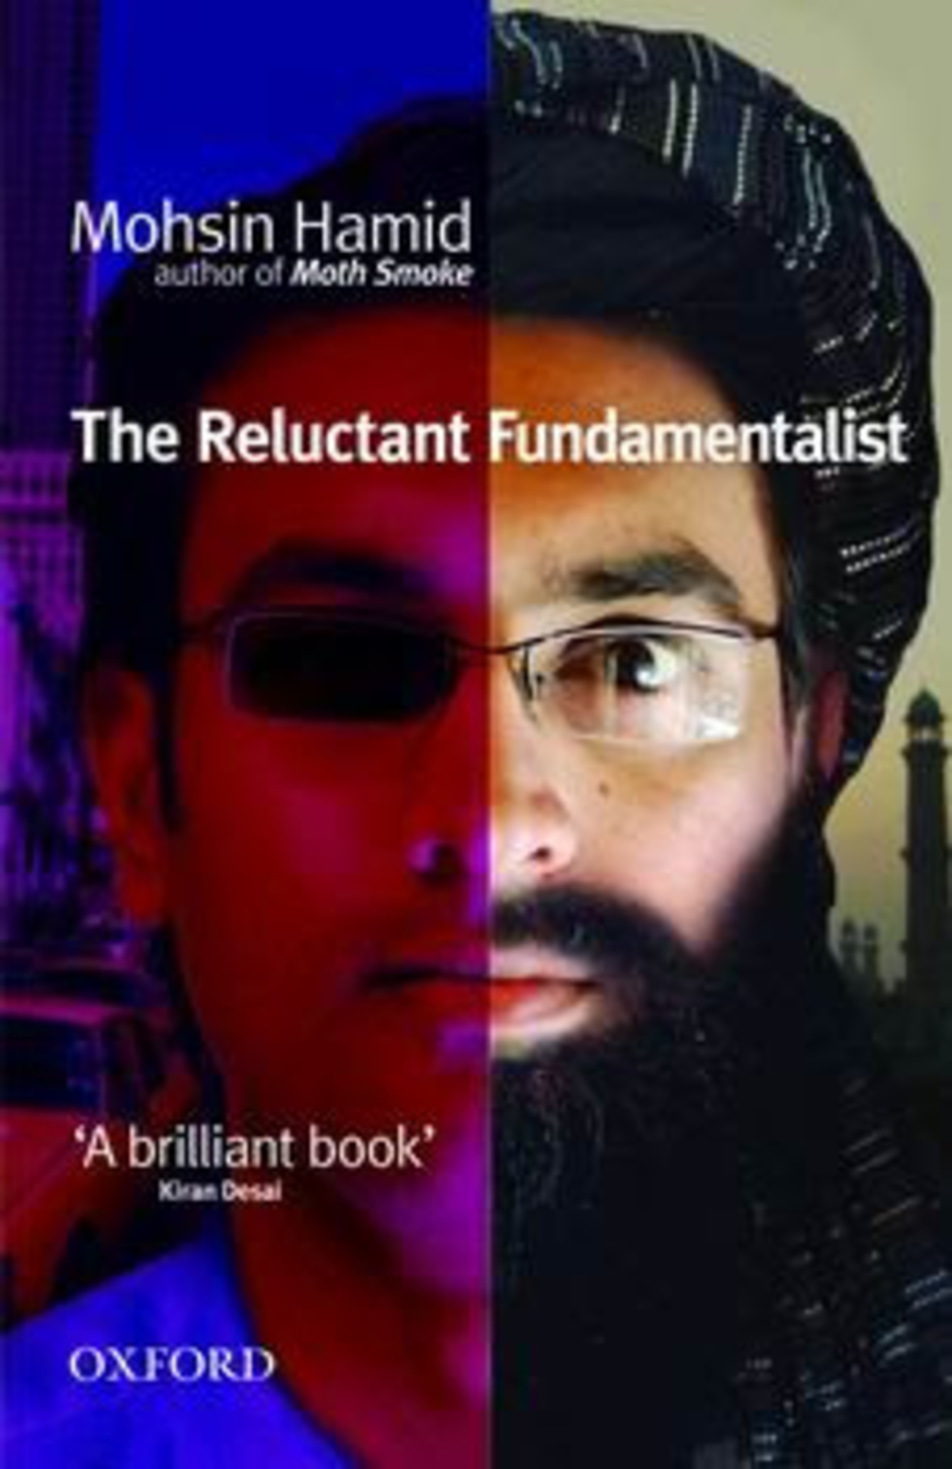 "essays on the reluctant fundamentalist A lover who didn't fall in love: multiculturalism study an essay on the reluctant fundamentalist by mochsin hamid ""the reluctant fundamentalist"" is a novel by mohsin hamid which contained long dramatic monologue of the protagonist, changez."